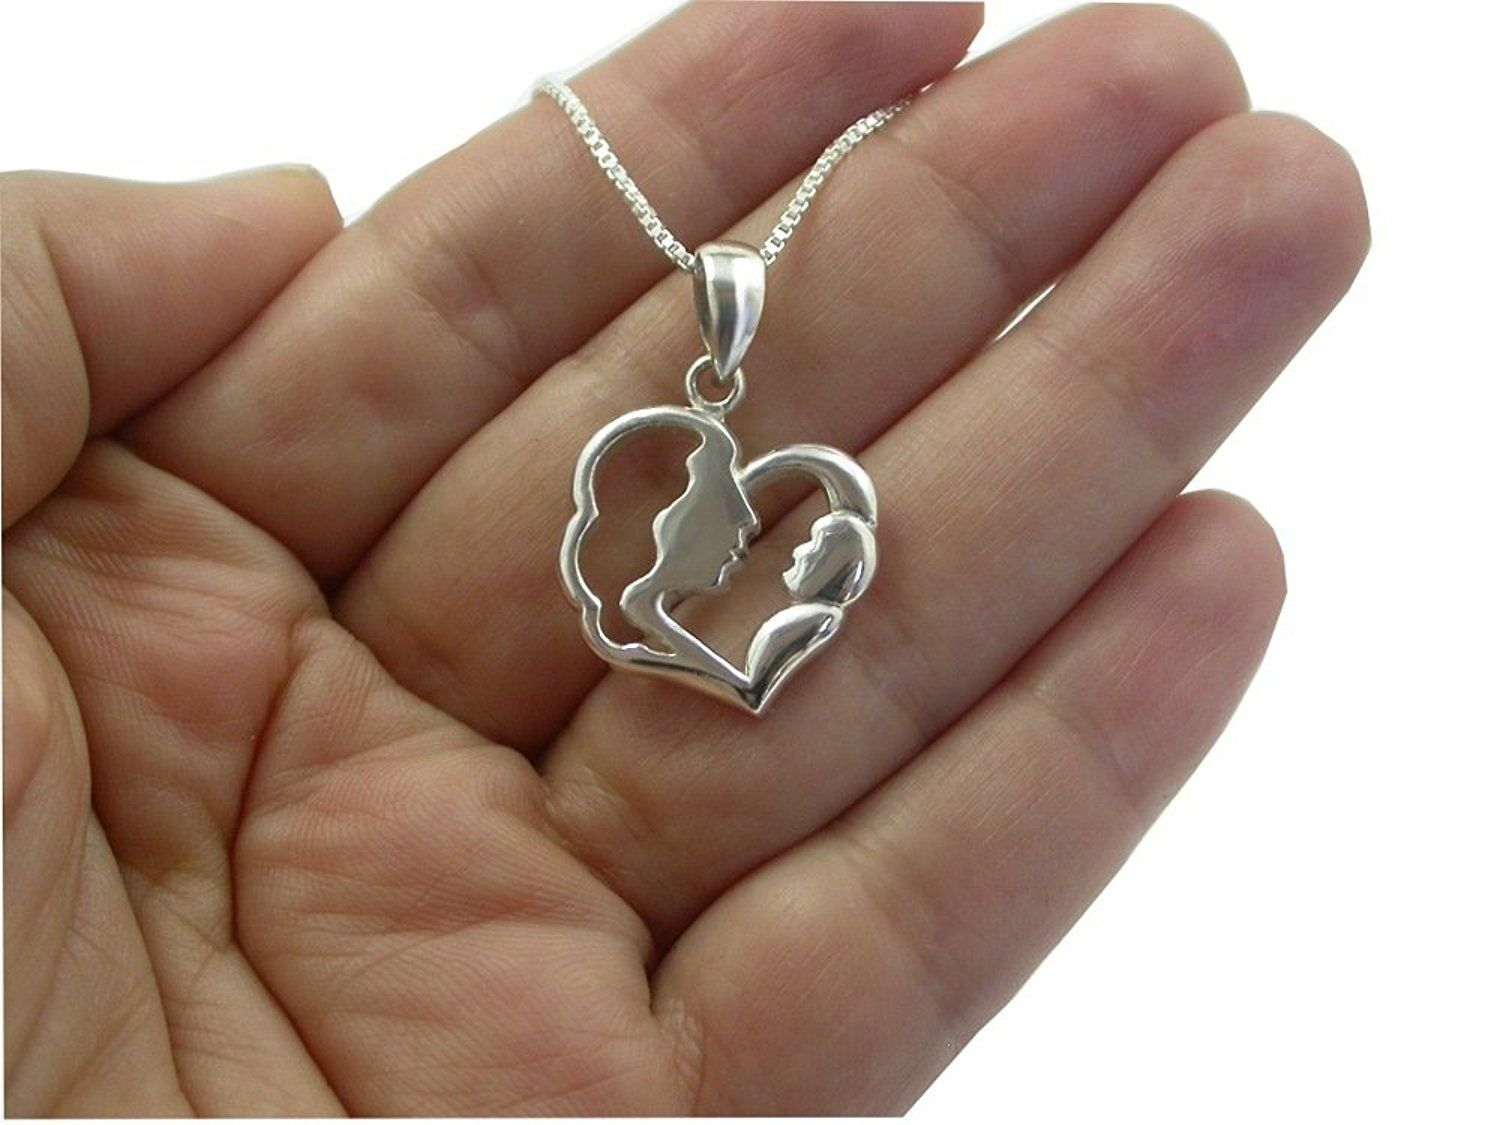 Sterling silver mom mother child pendant heart necklace 18 chain sterling silver mom mother child pendant heart necklace 18 chain learn more by visiting aloadofball Image collections